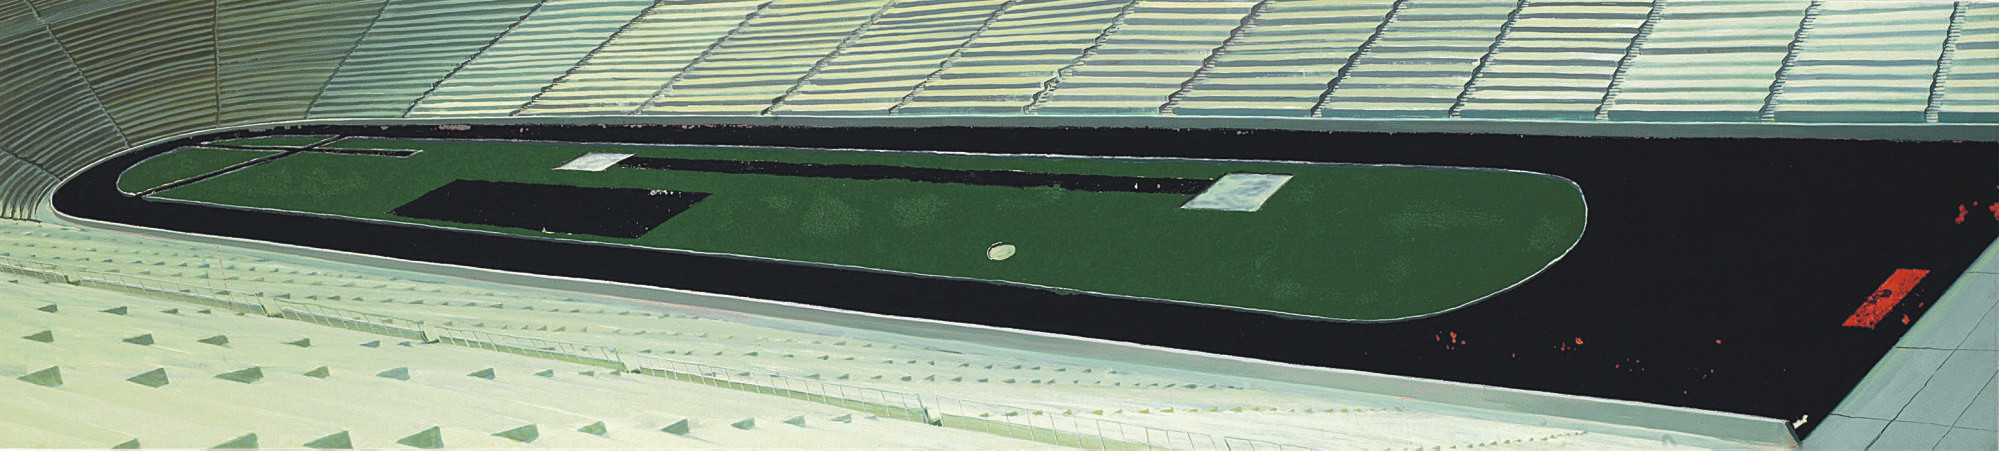 Untitled (Stadium Painting)